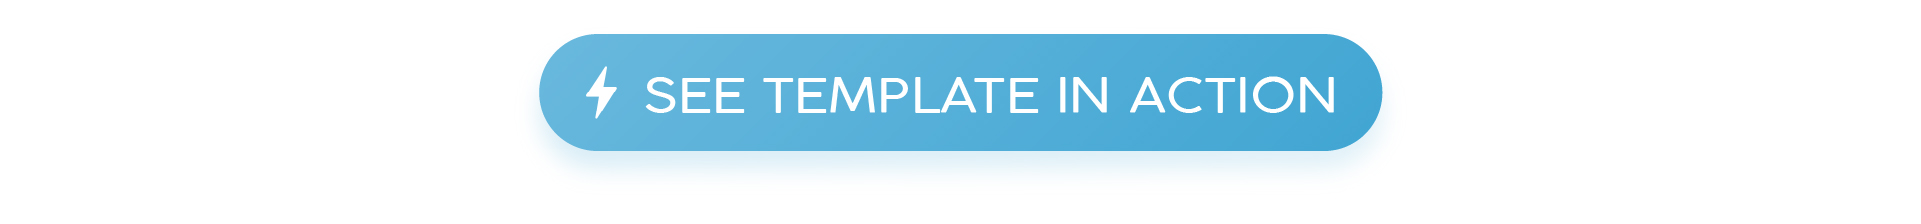 Call to action button for creative brief template